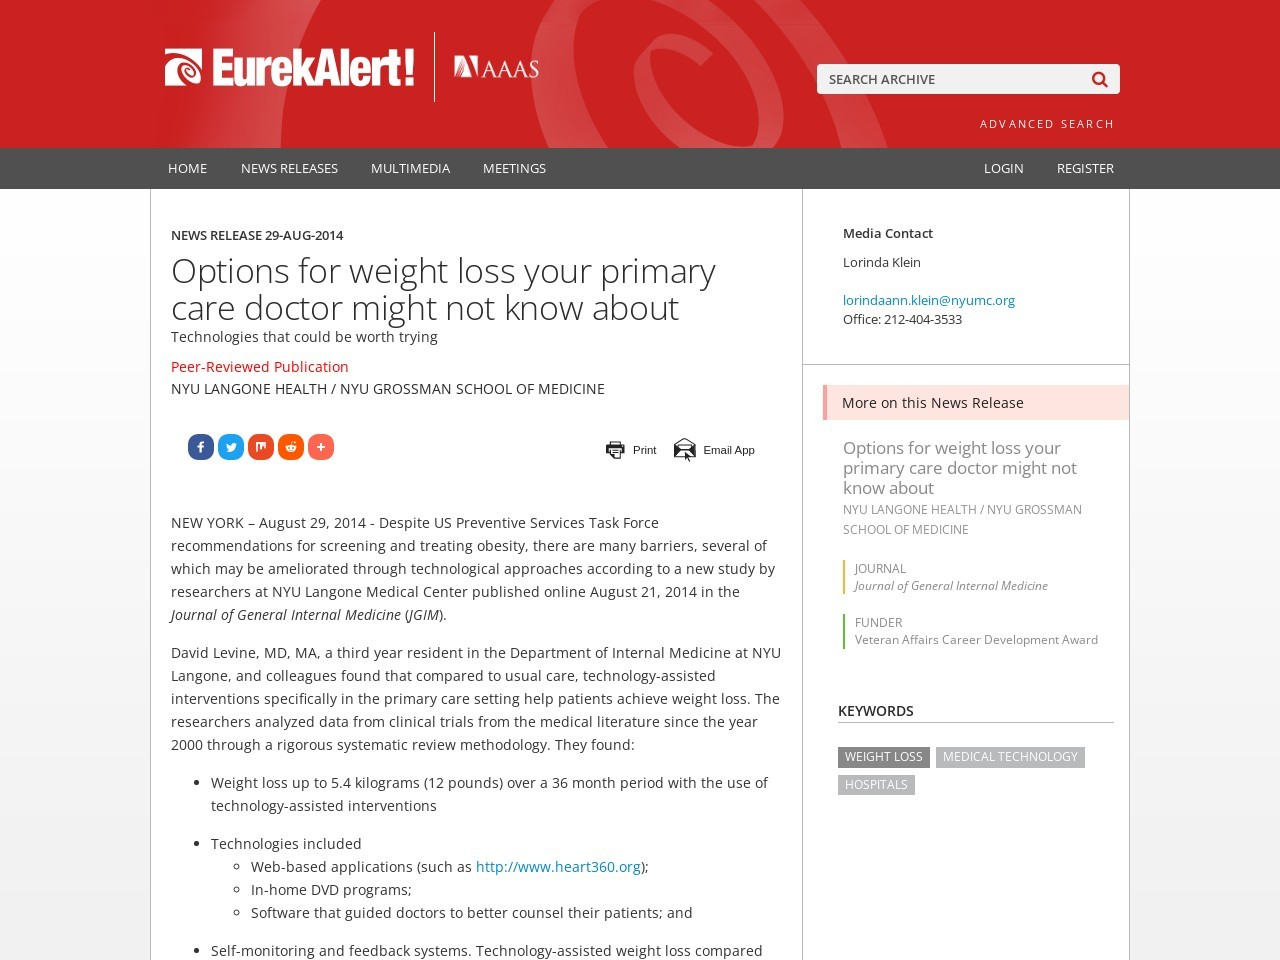 Options for weight loss your primary care doctor might not know about